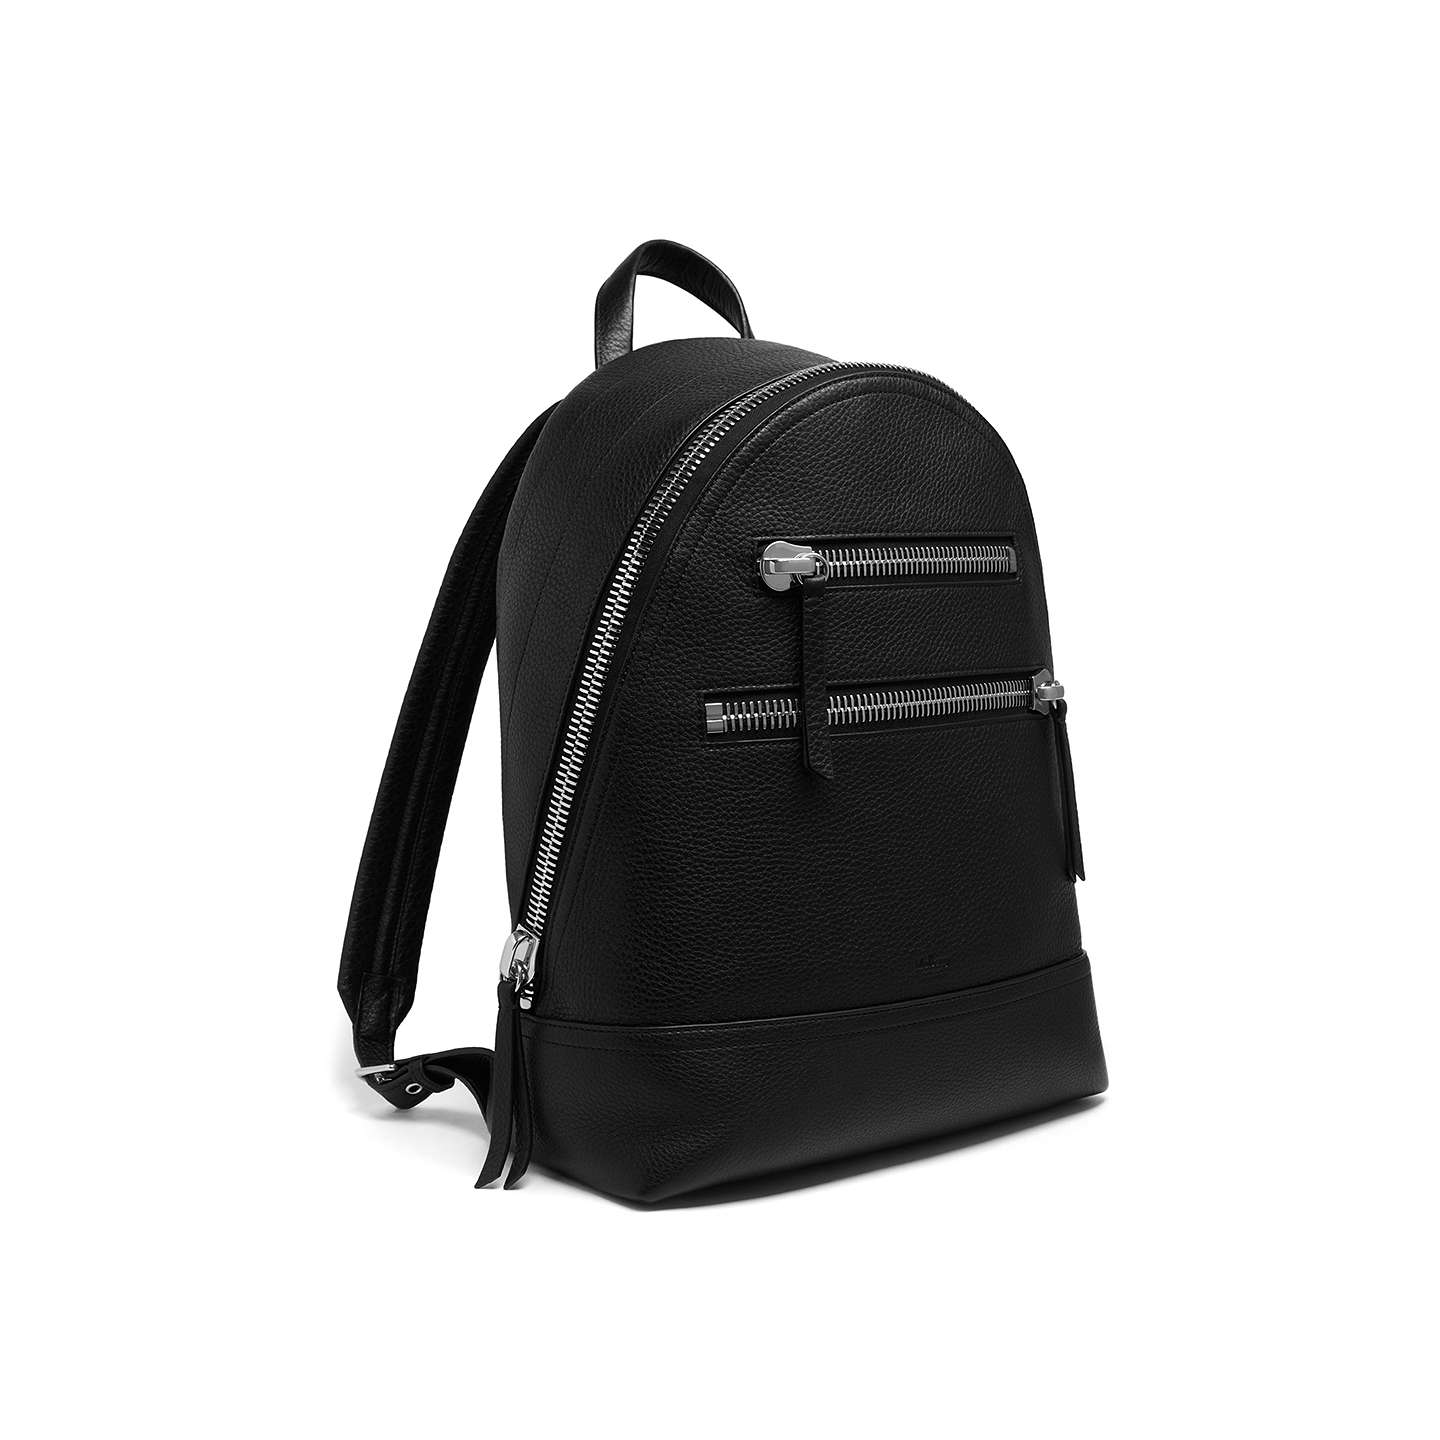 BuyMulberry Zip Backpack, Black Online at johnlewis.com